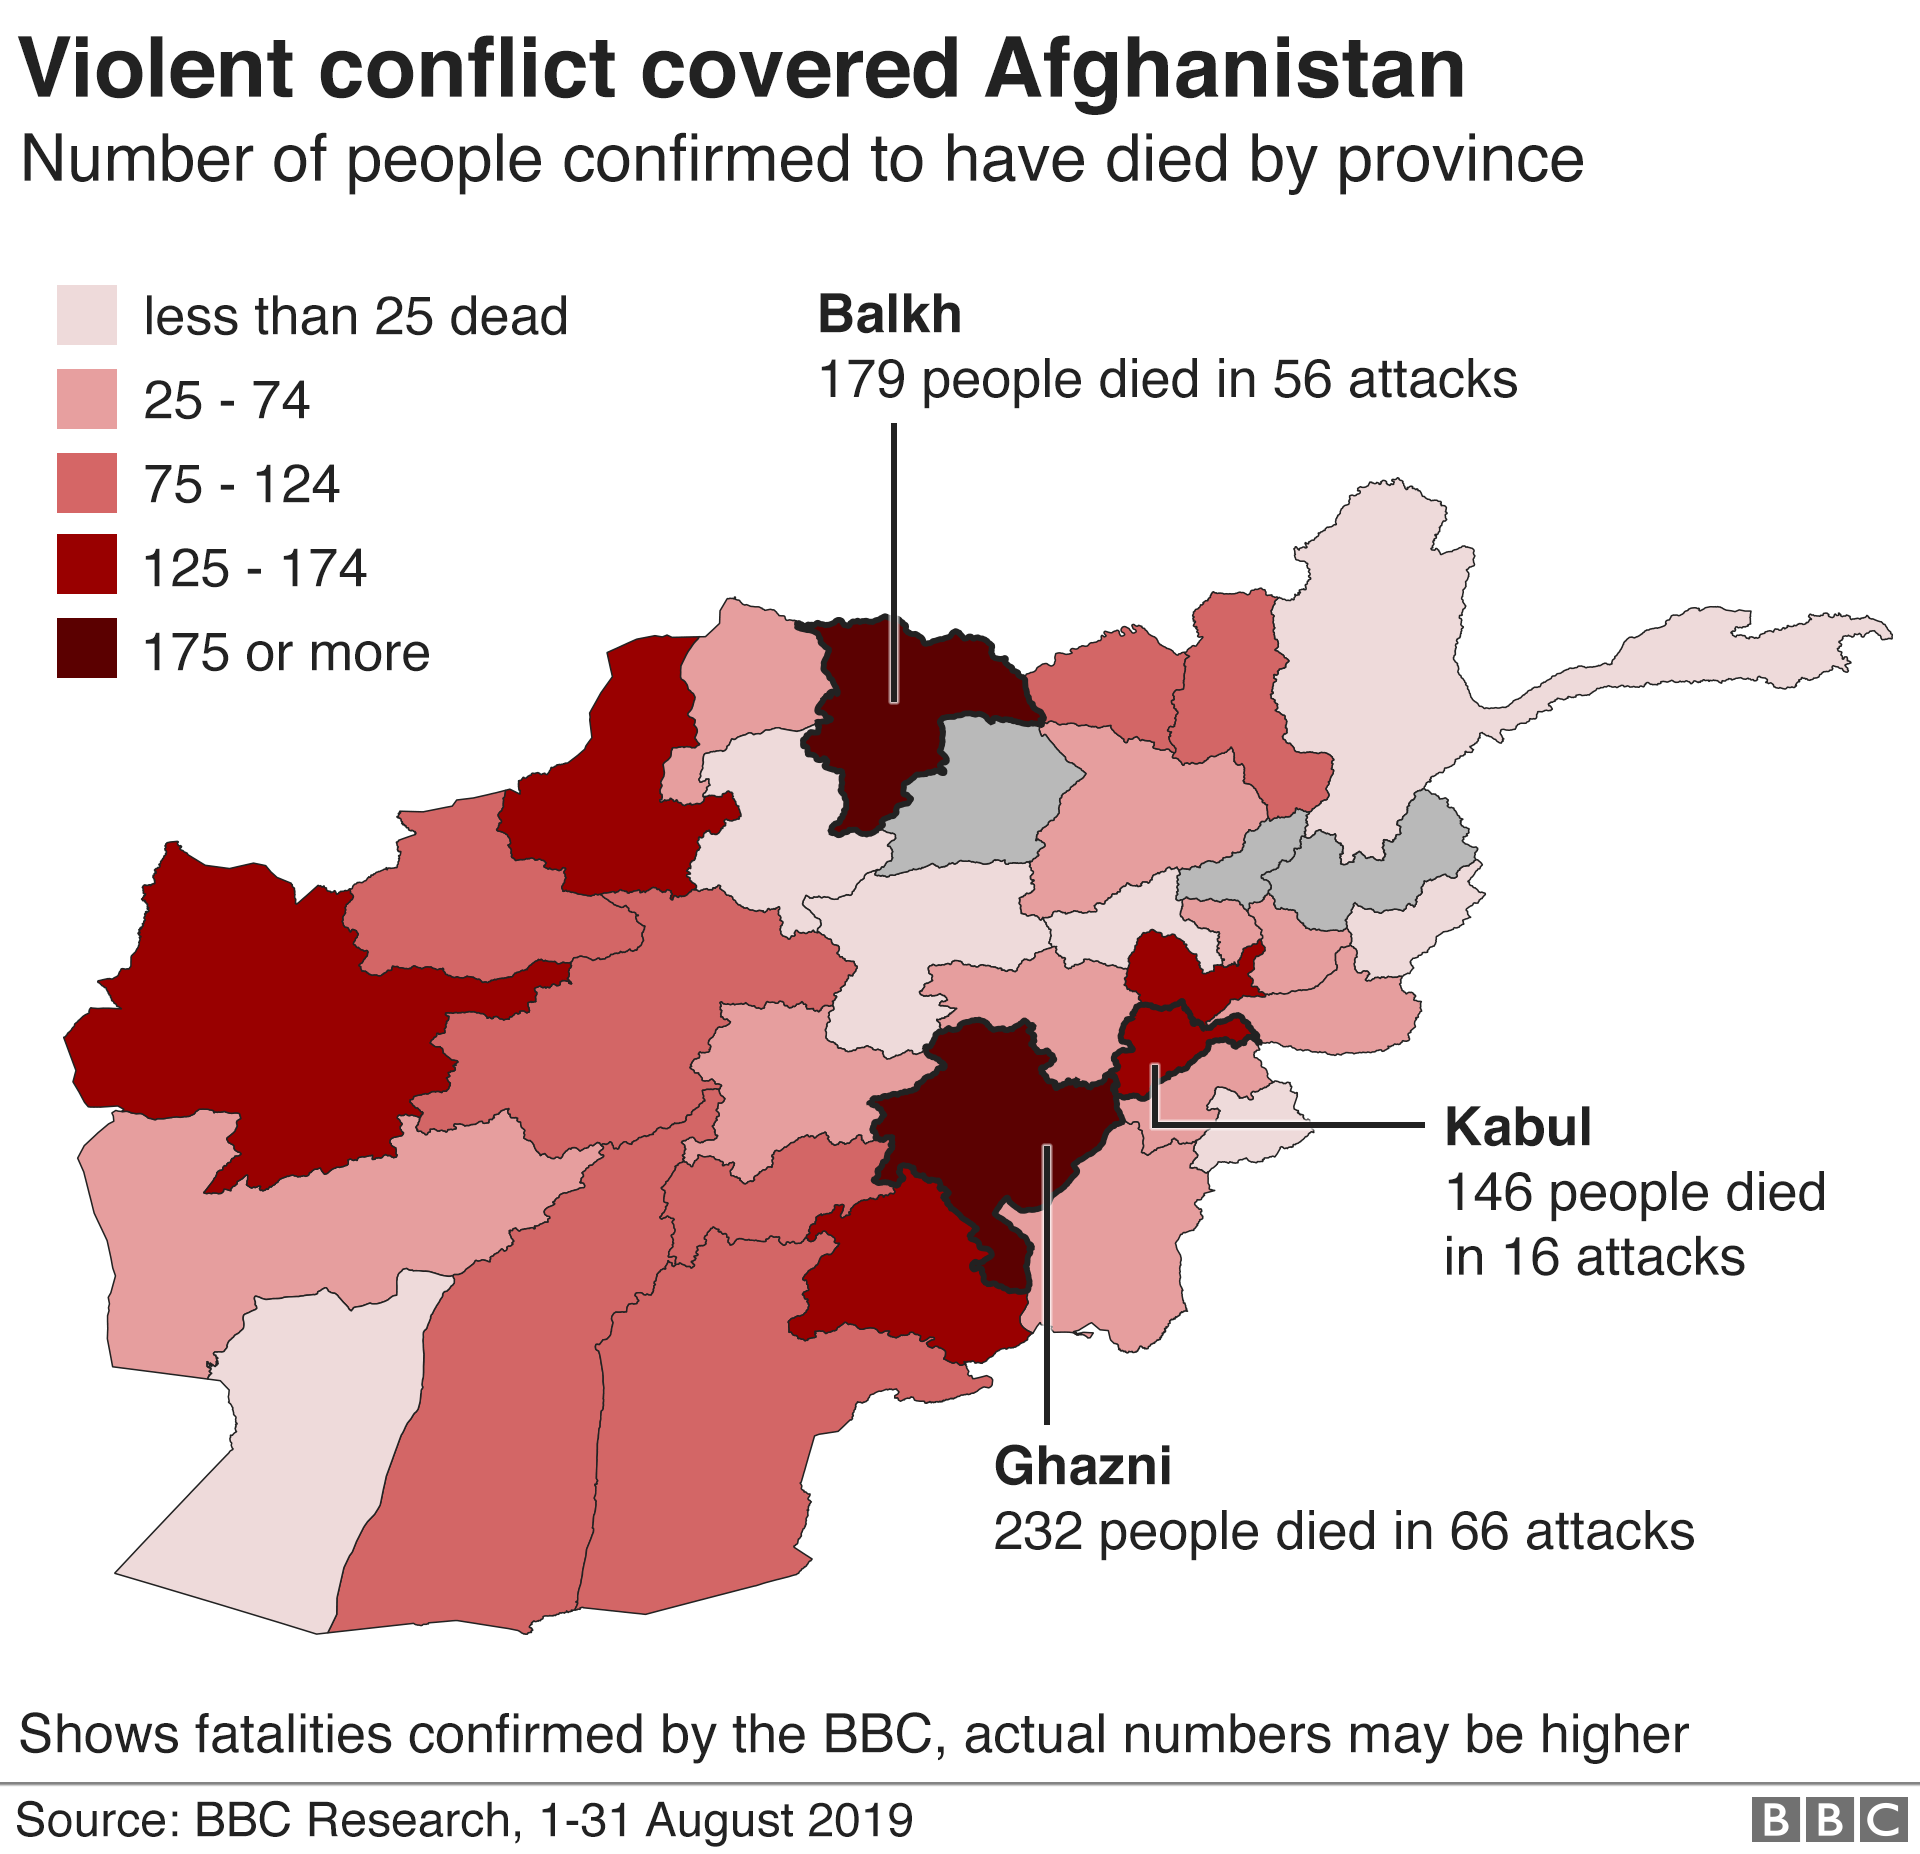 Map of total fatalities by province in Afghanistan